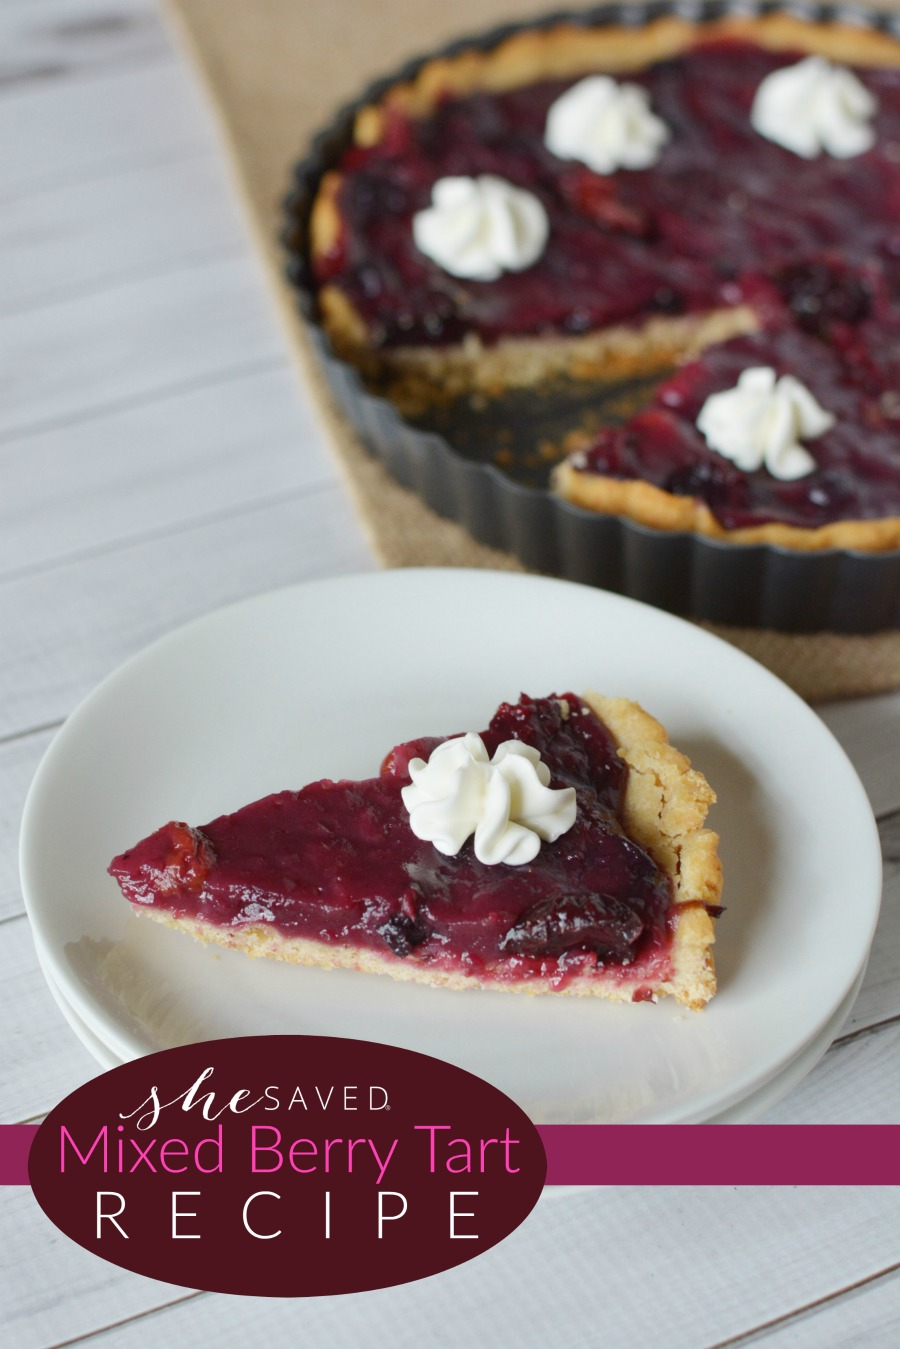 This mixed berry tart recipe is the perfect dessert addition your your holiday meal!